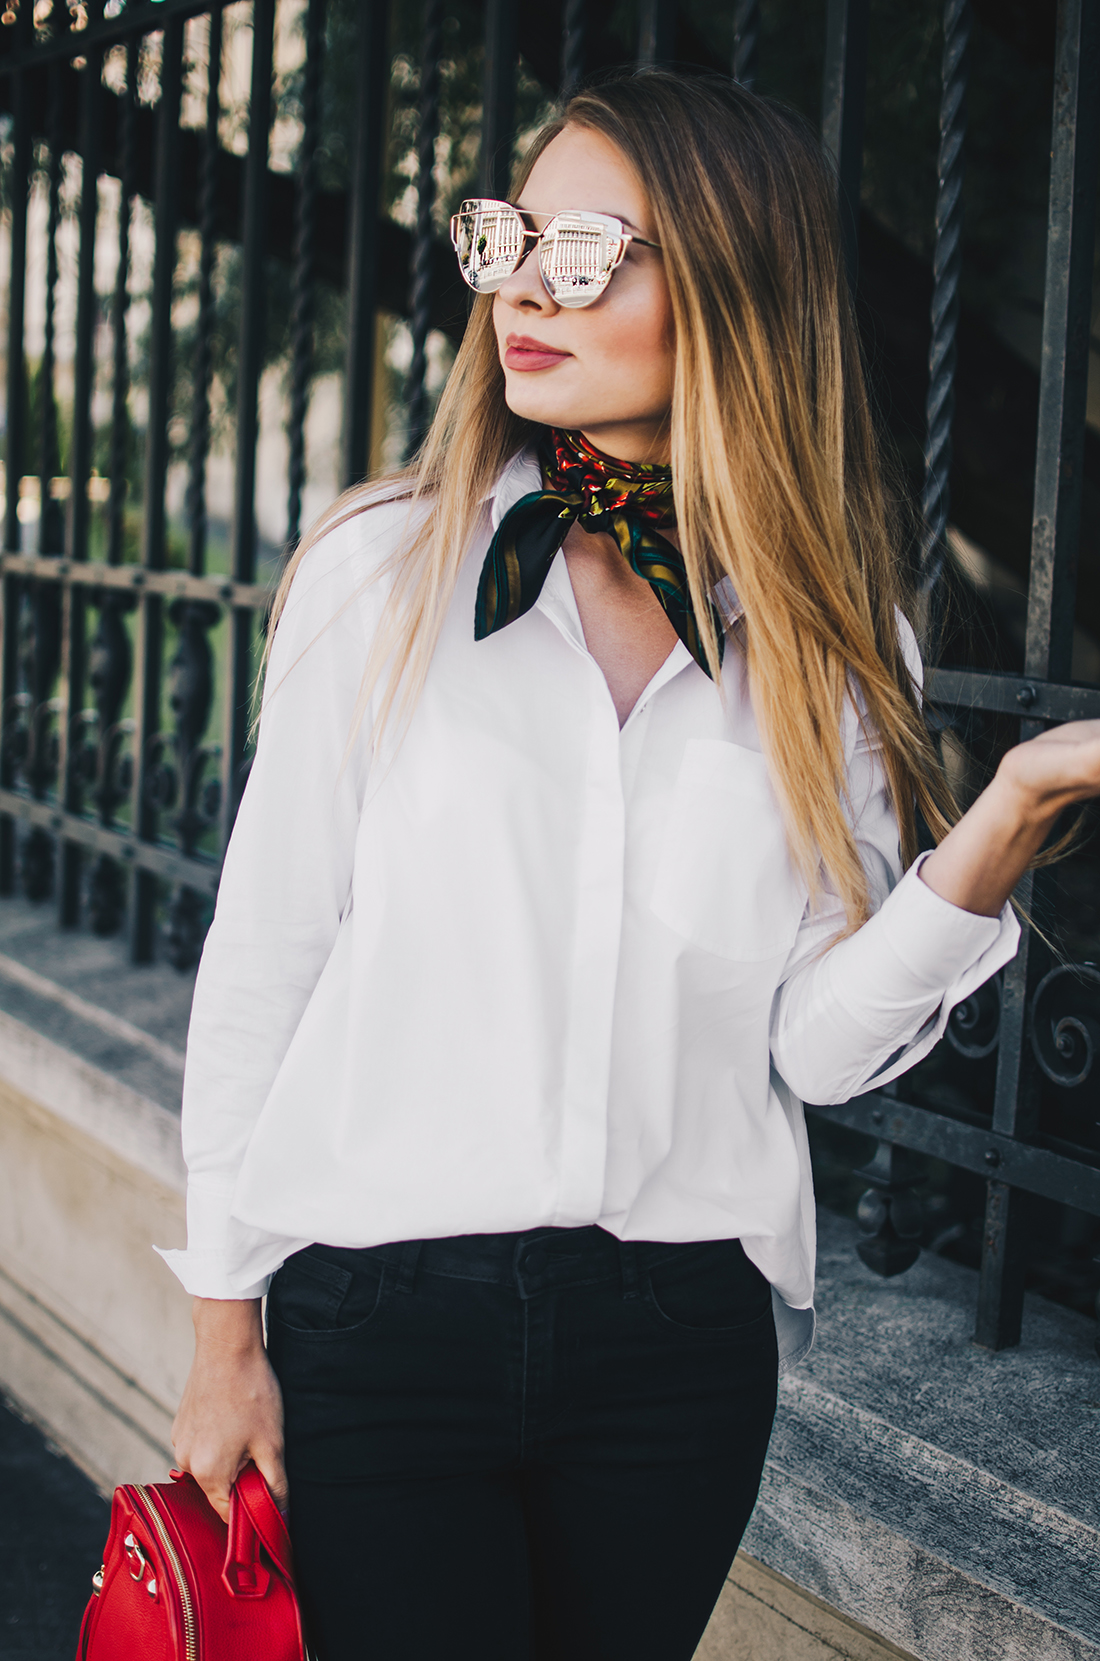 black-and-white-outfit-zerouv-sunglasses-red-bag-vintage-scarf-1